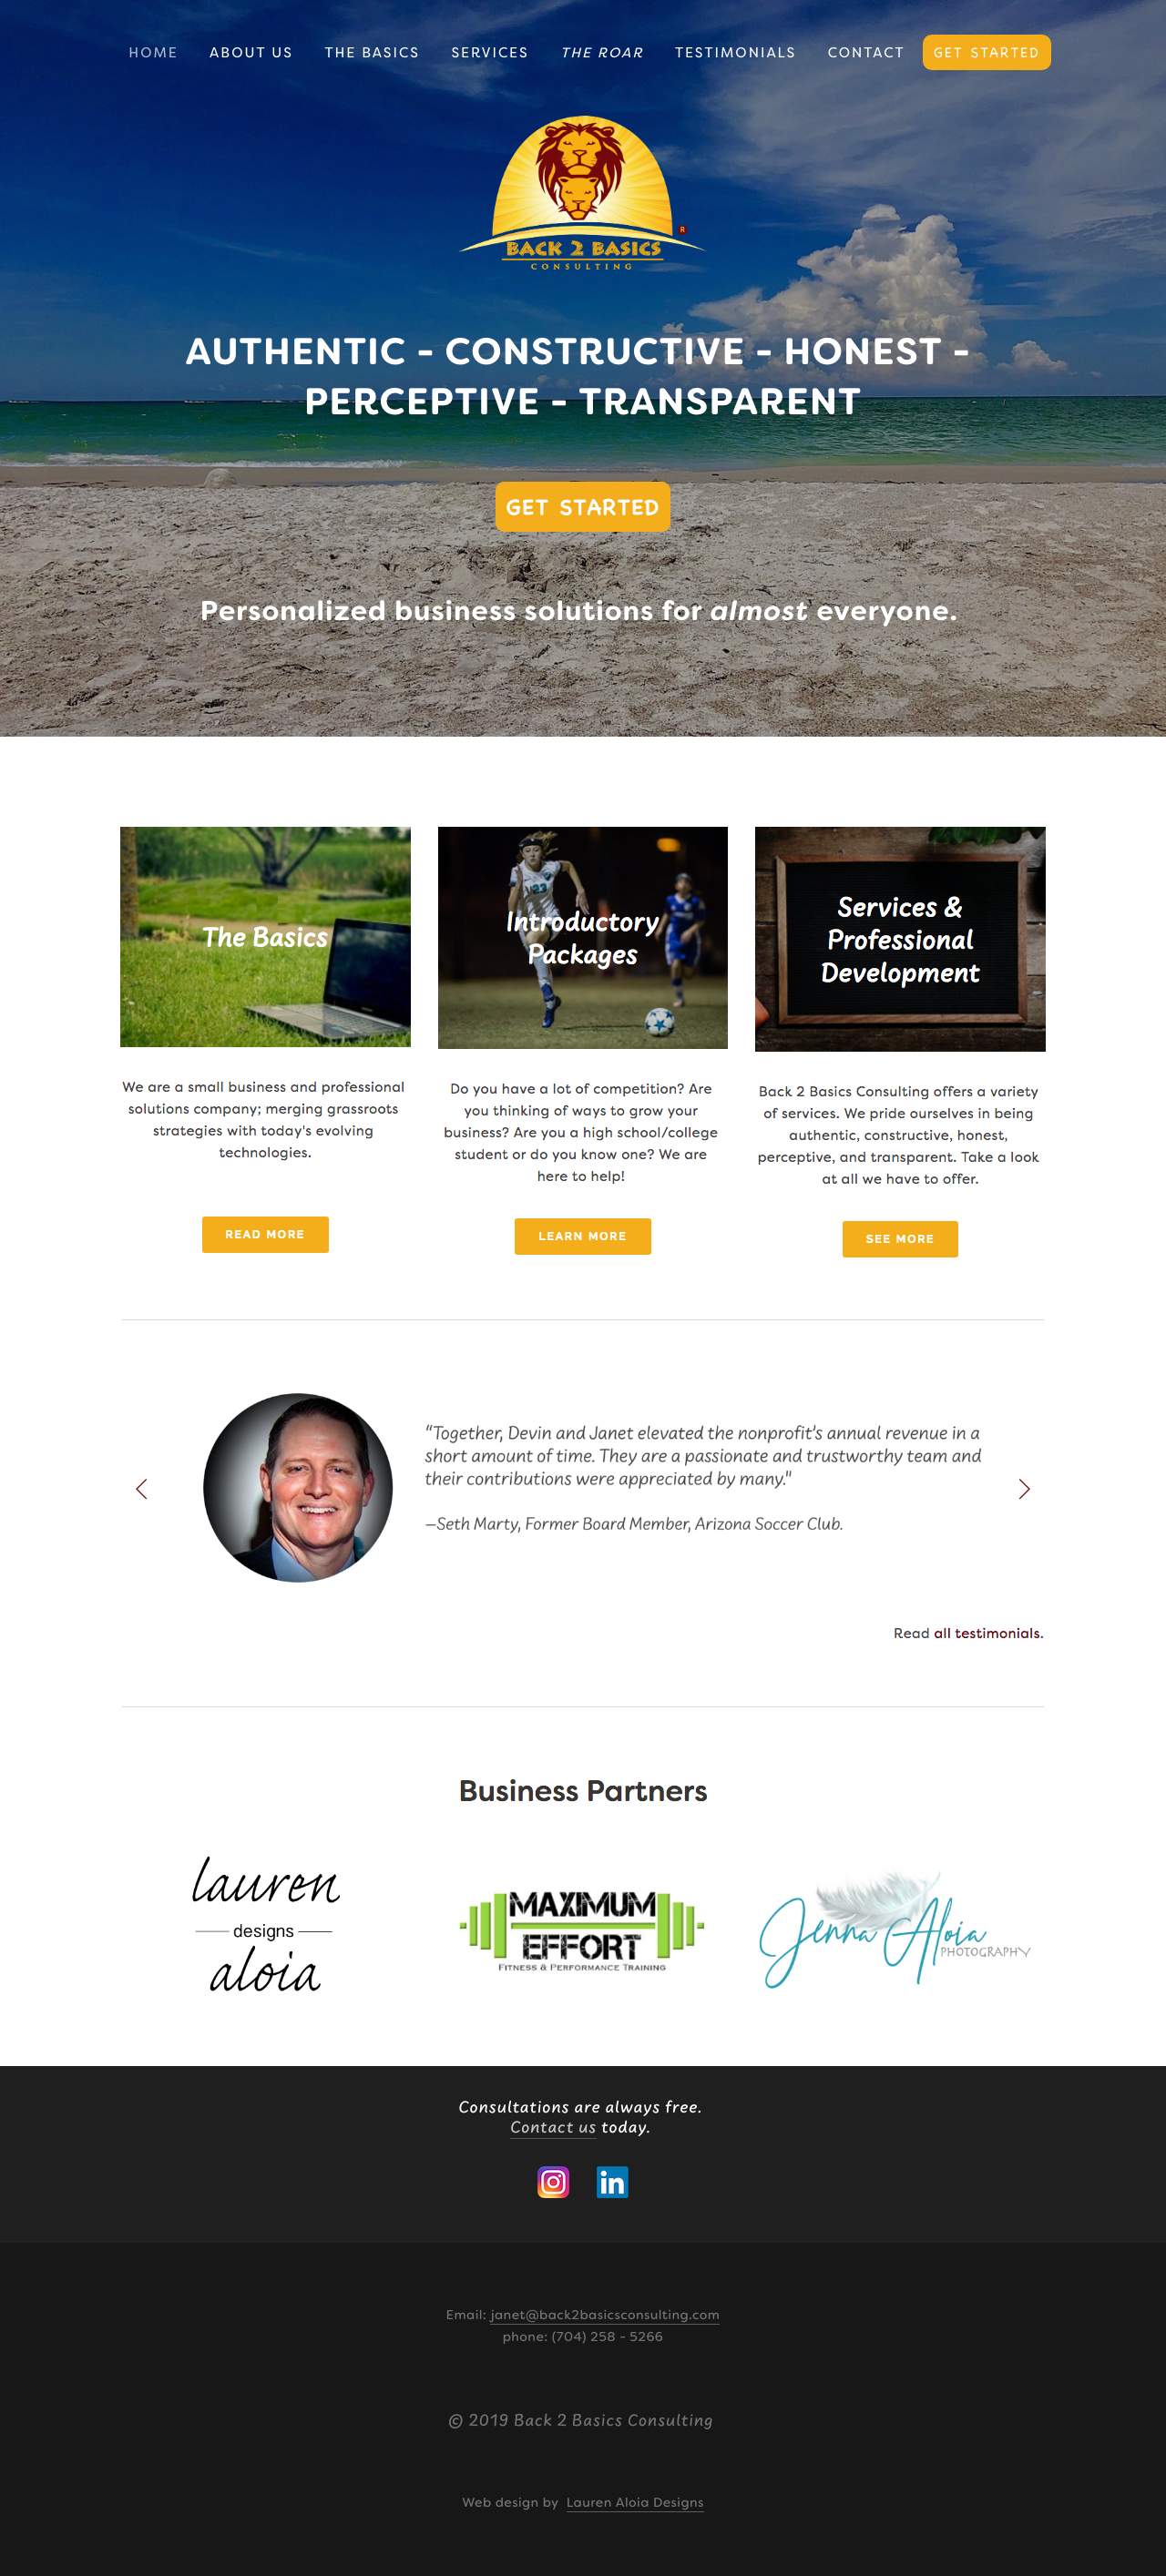 Back 2 Basics Consulting, Home Page